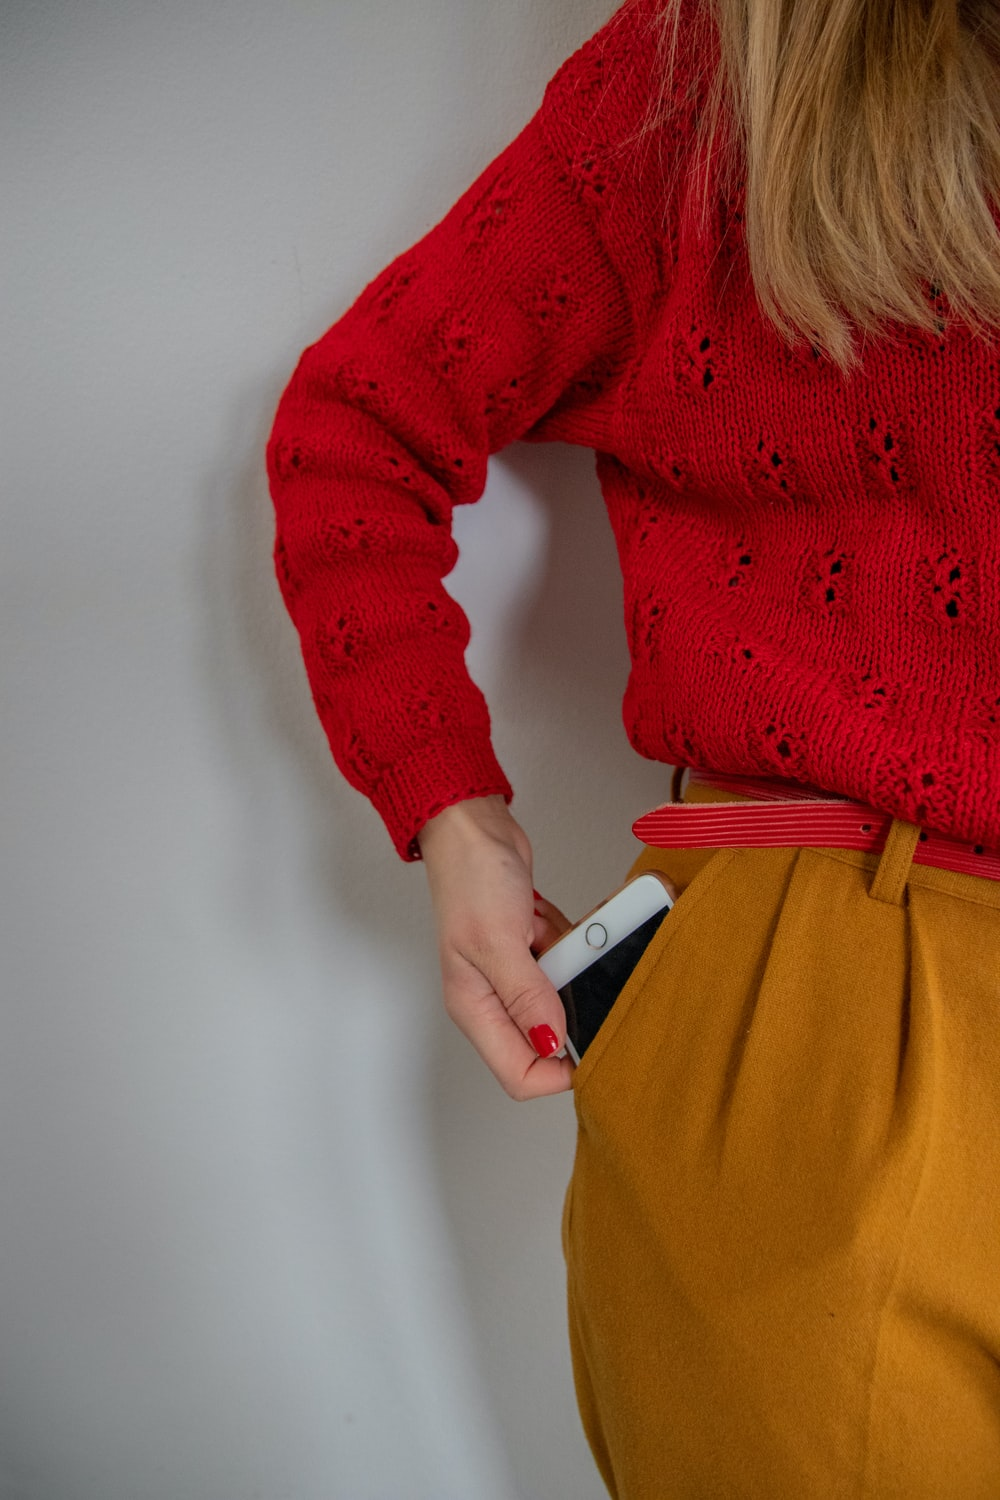 woman standing while holding gold iPhone